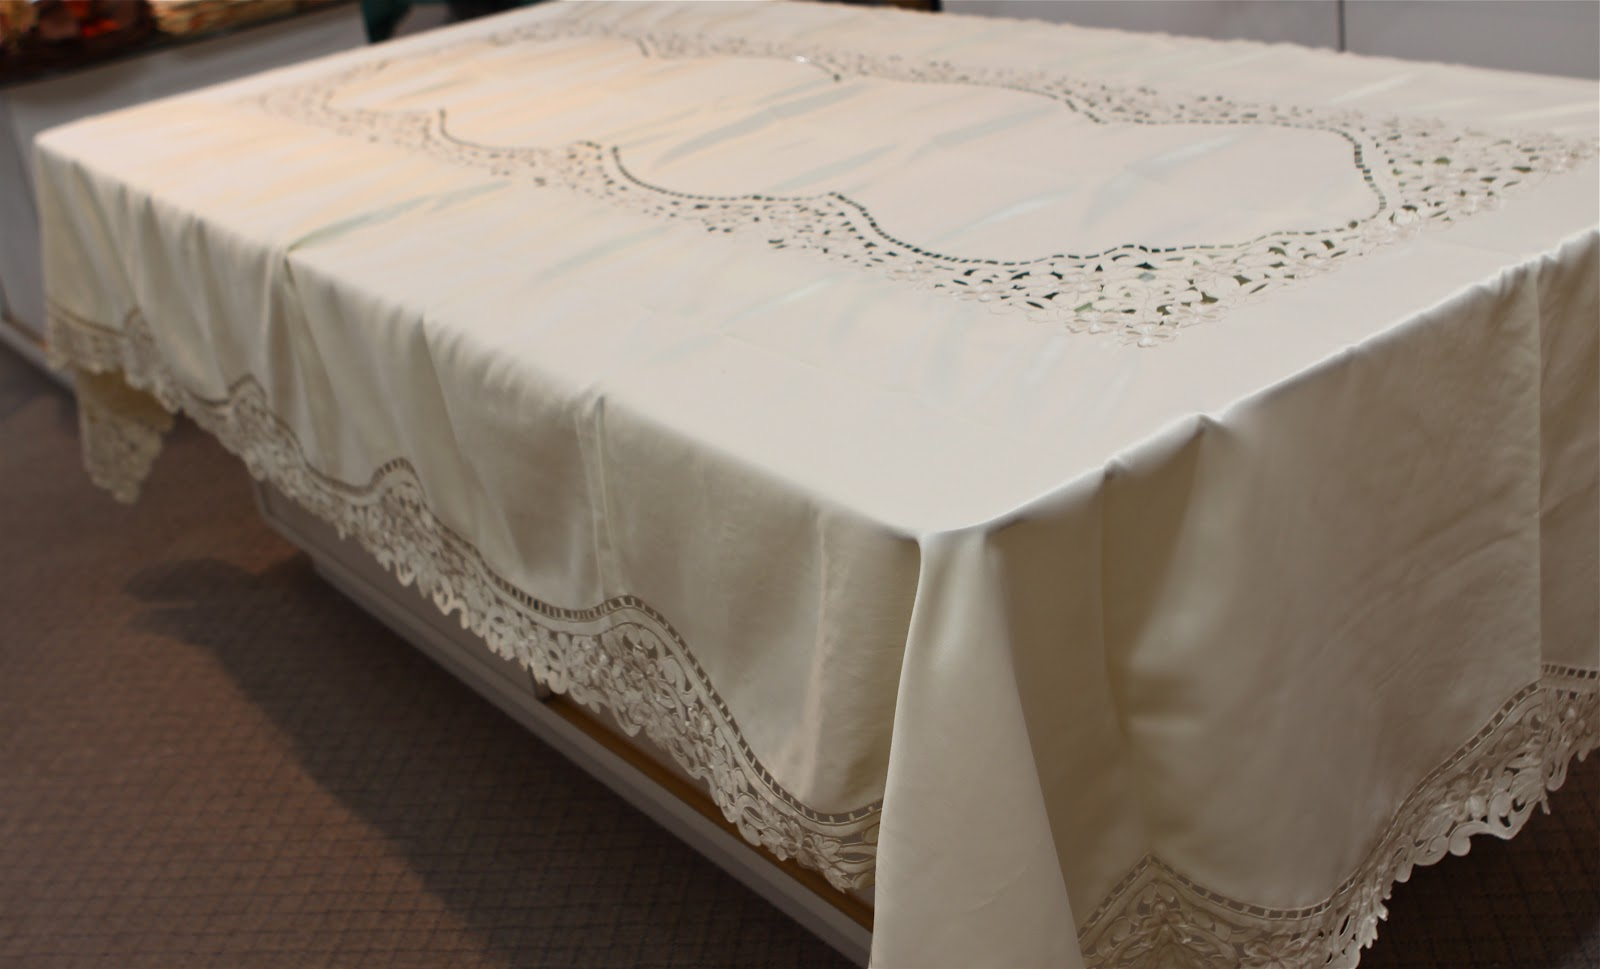 They Had Lots And Lots Of White And Cream Color Cutwork Tablecloths In Many  Different Patterns.